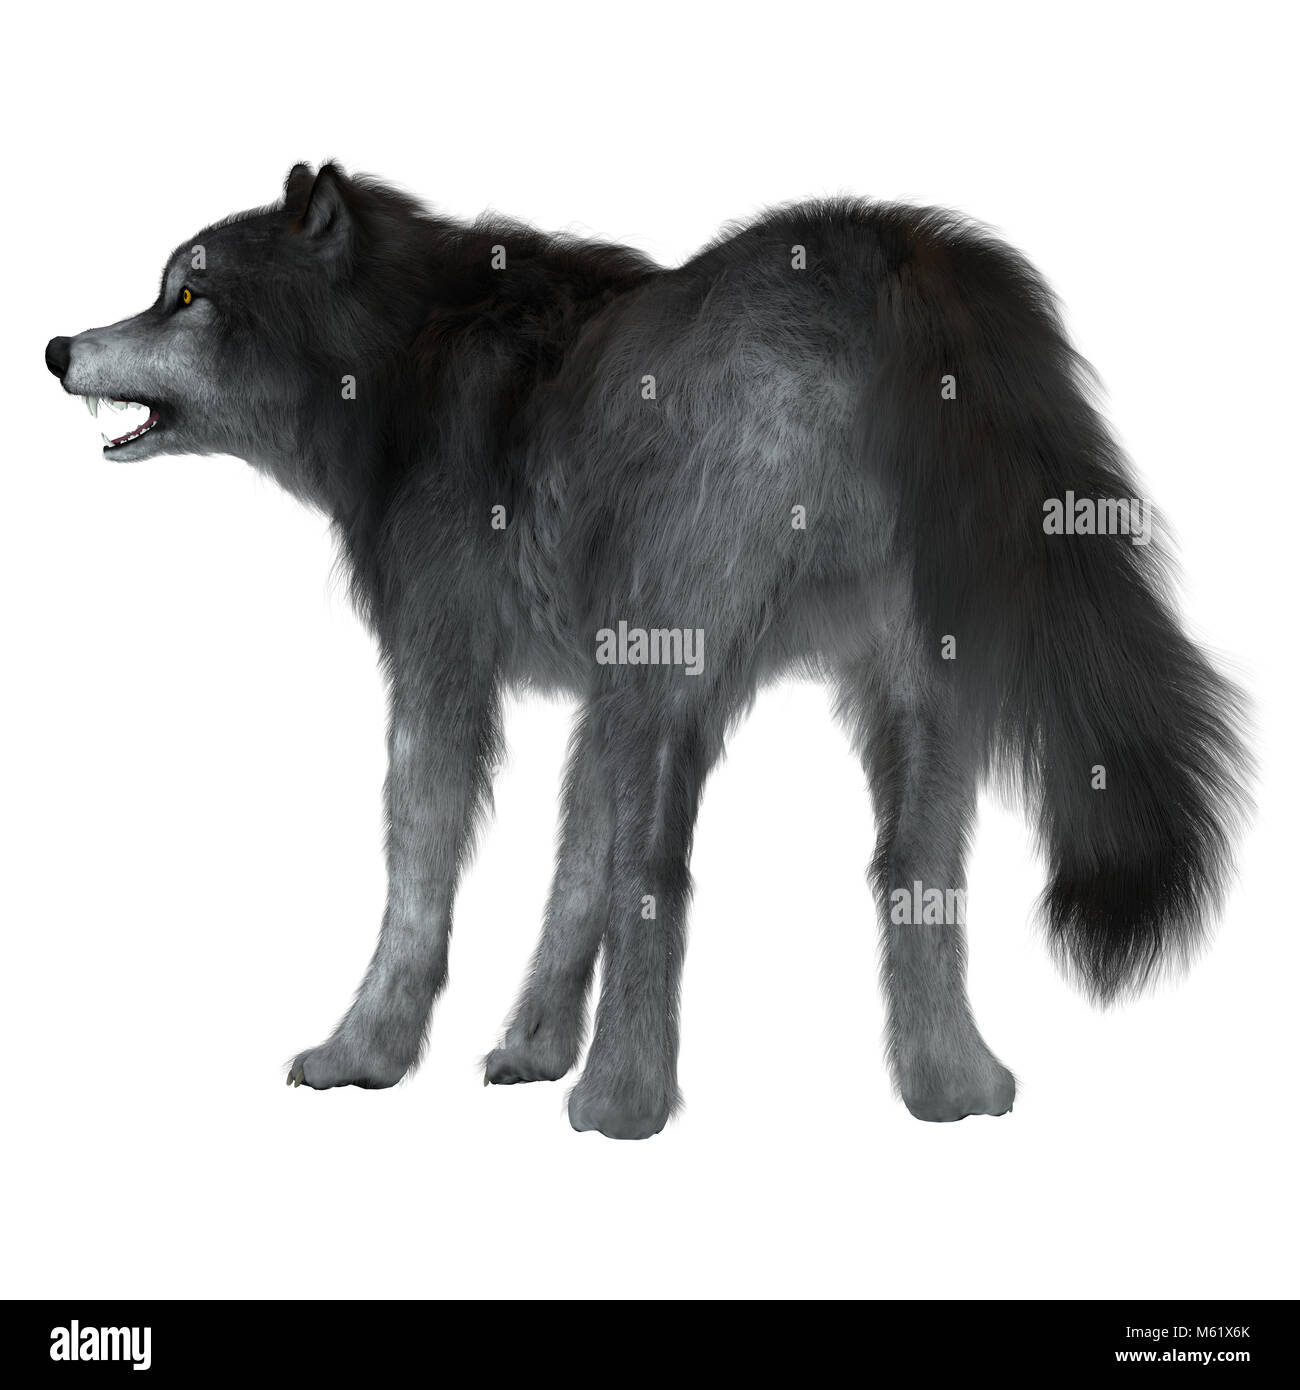 The Dire Wolf was a prehistoric carnivore that lived in North and South America during the Pleistocene Period. - Stock Image